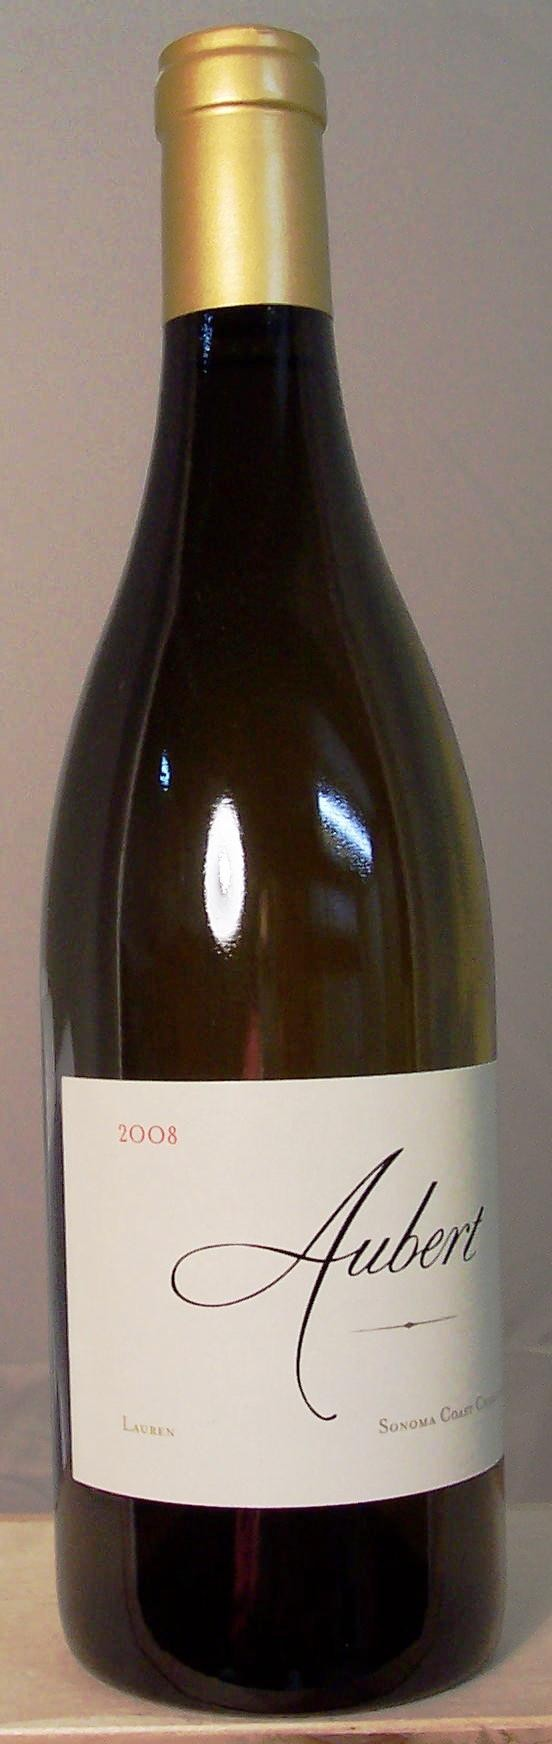 Aubert Wines Chardonnay Lauren Vineyard Sonoma Coast 2008